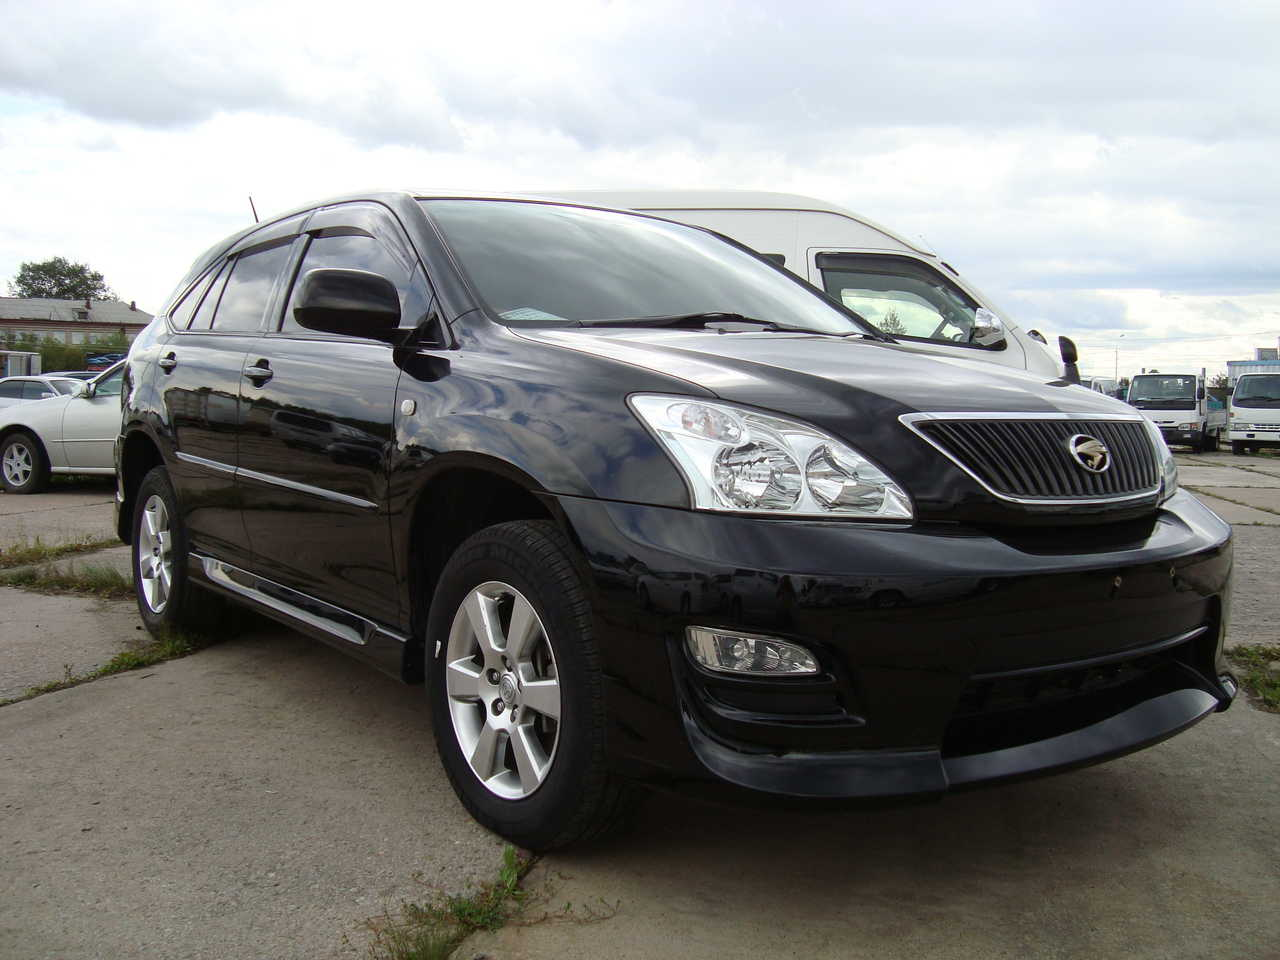 lexus rx 330 problems with Toyota Harrier A1252329027b3009465 P on 391880 Unknown Oil Leak From Bottom Of Engine moreover 467236 Certain 2007 Rx350 Needs Vvt I Oil Hose Replacement 4 likewise Toyota harrier a1252329027b3009465 p likewise Lexus rx350 a1236851454b2538253 6 p together with Watch.